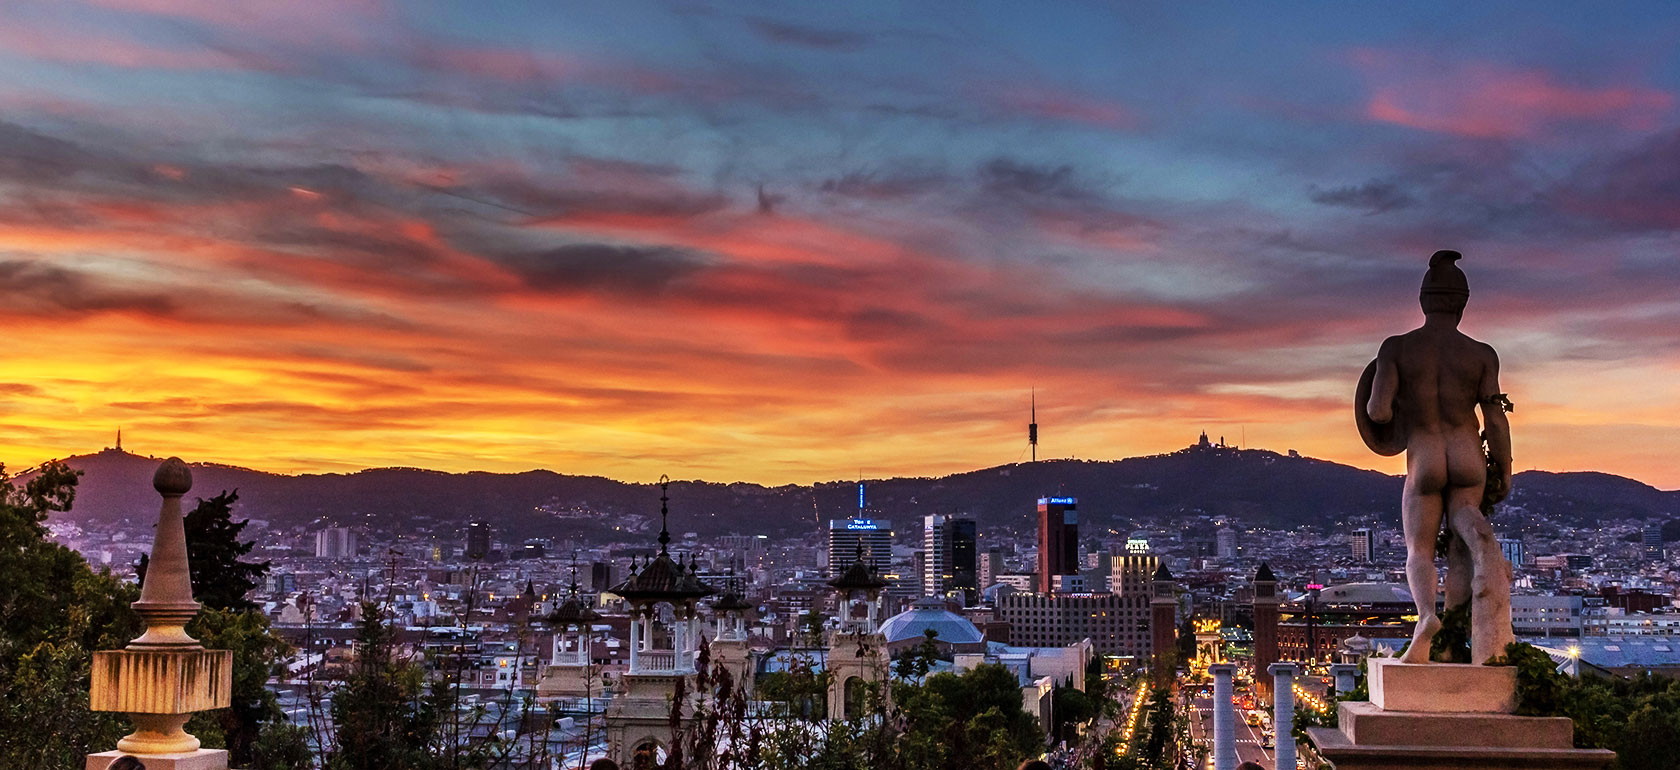 Barcelona at the break of dawn